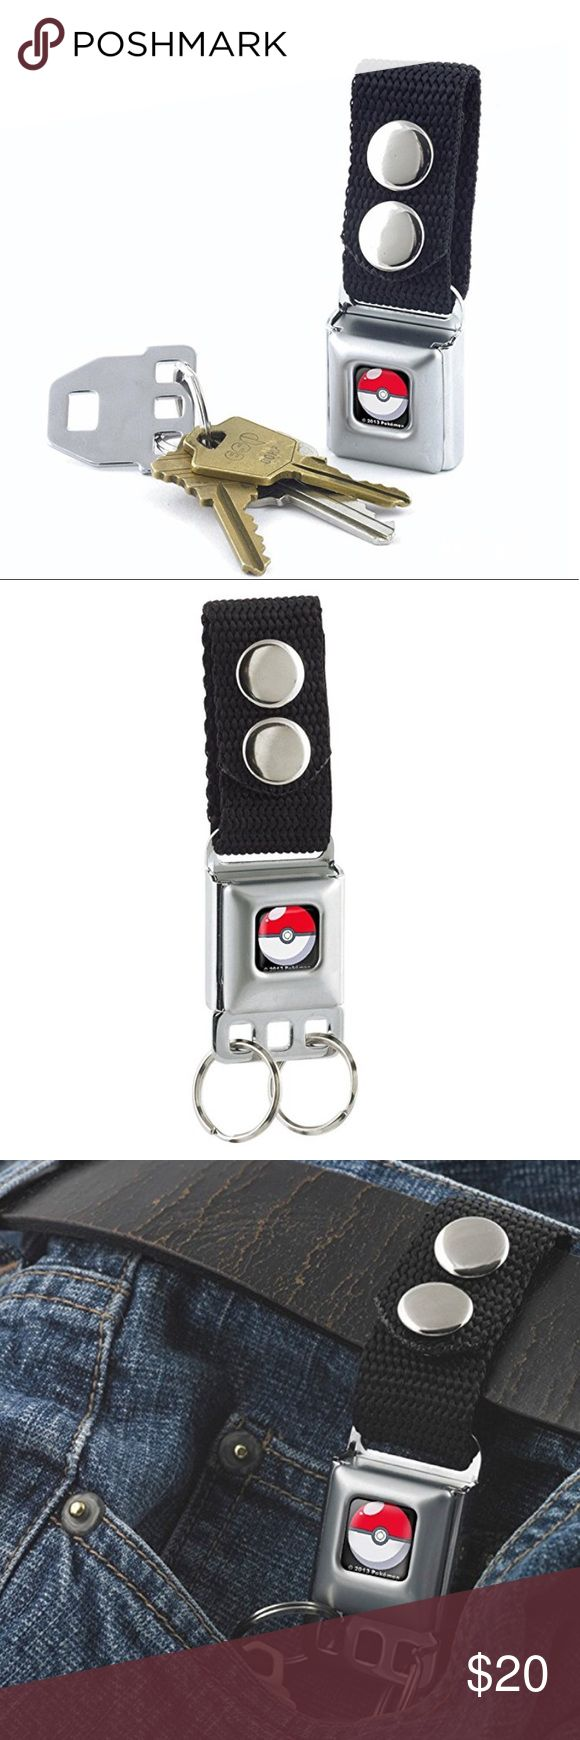 Seatbelt keychain Pokémon Official Licensed Product This keychain conveniently releases your keys with a push of the button. Two snaps on the 1 inch nylon webbing make it easy to attach to your belt, purse, sports bag, etc This is a very unique item and is sure to catch the attention of everyone around. It is made with a miniature seatbelt buckle clasp and really works! Product information Package Dimensions7.8 x 1 x 0.4 inches Item Weight2.4 ounces BUCKLE DESIGN Accessories Key & Card…